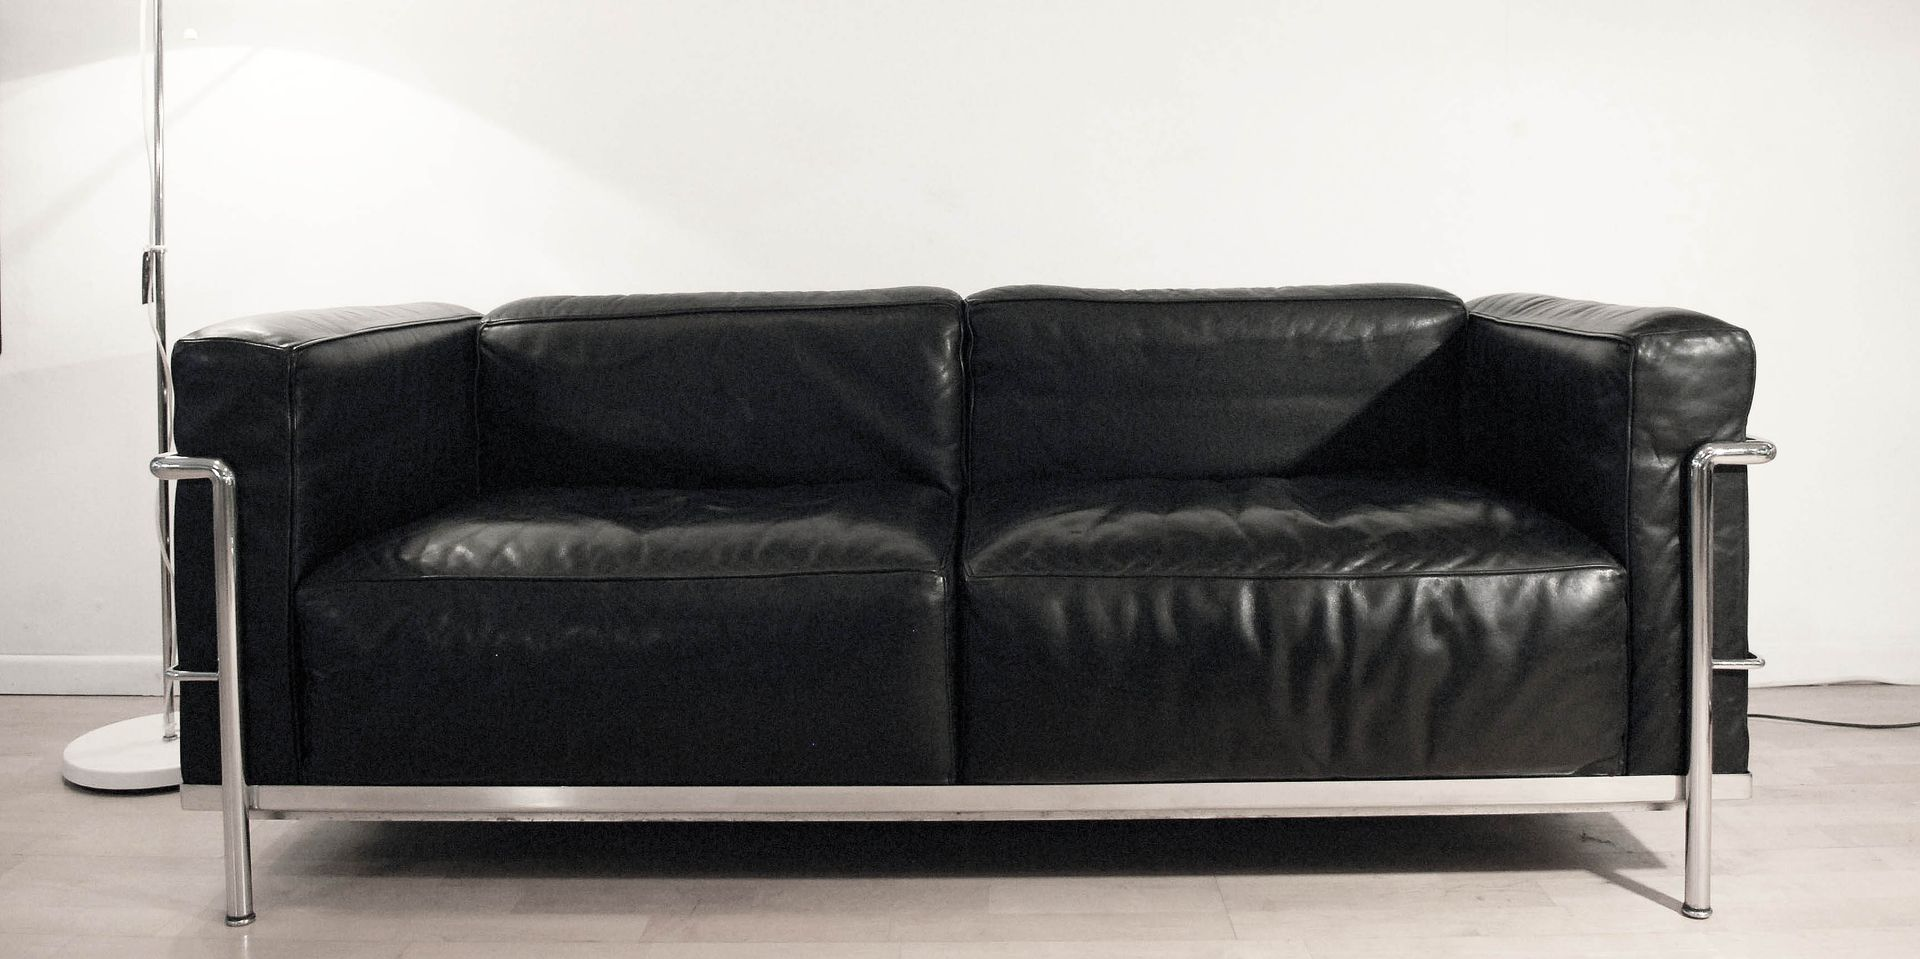 lc3 grand confort sofa von le corbusier f r cassina bei pamono kaufen. Black Bedroom Furniture Sets. Home Design Ideas